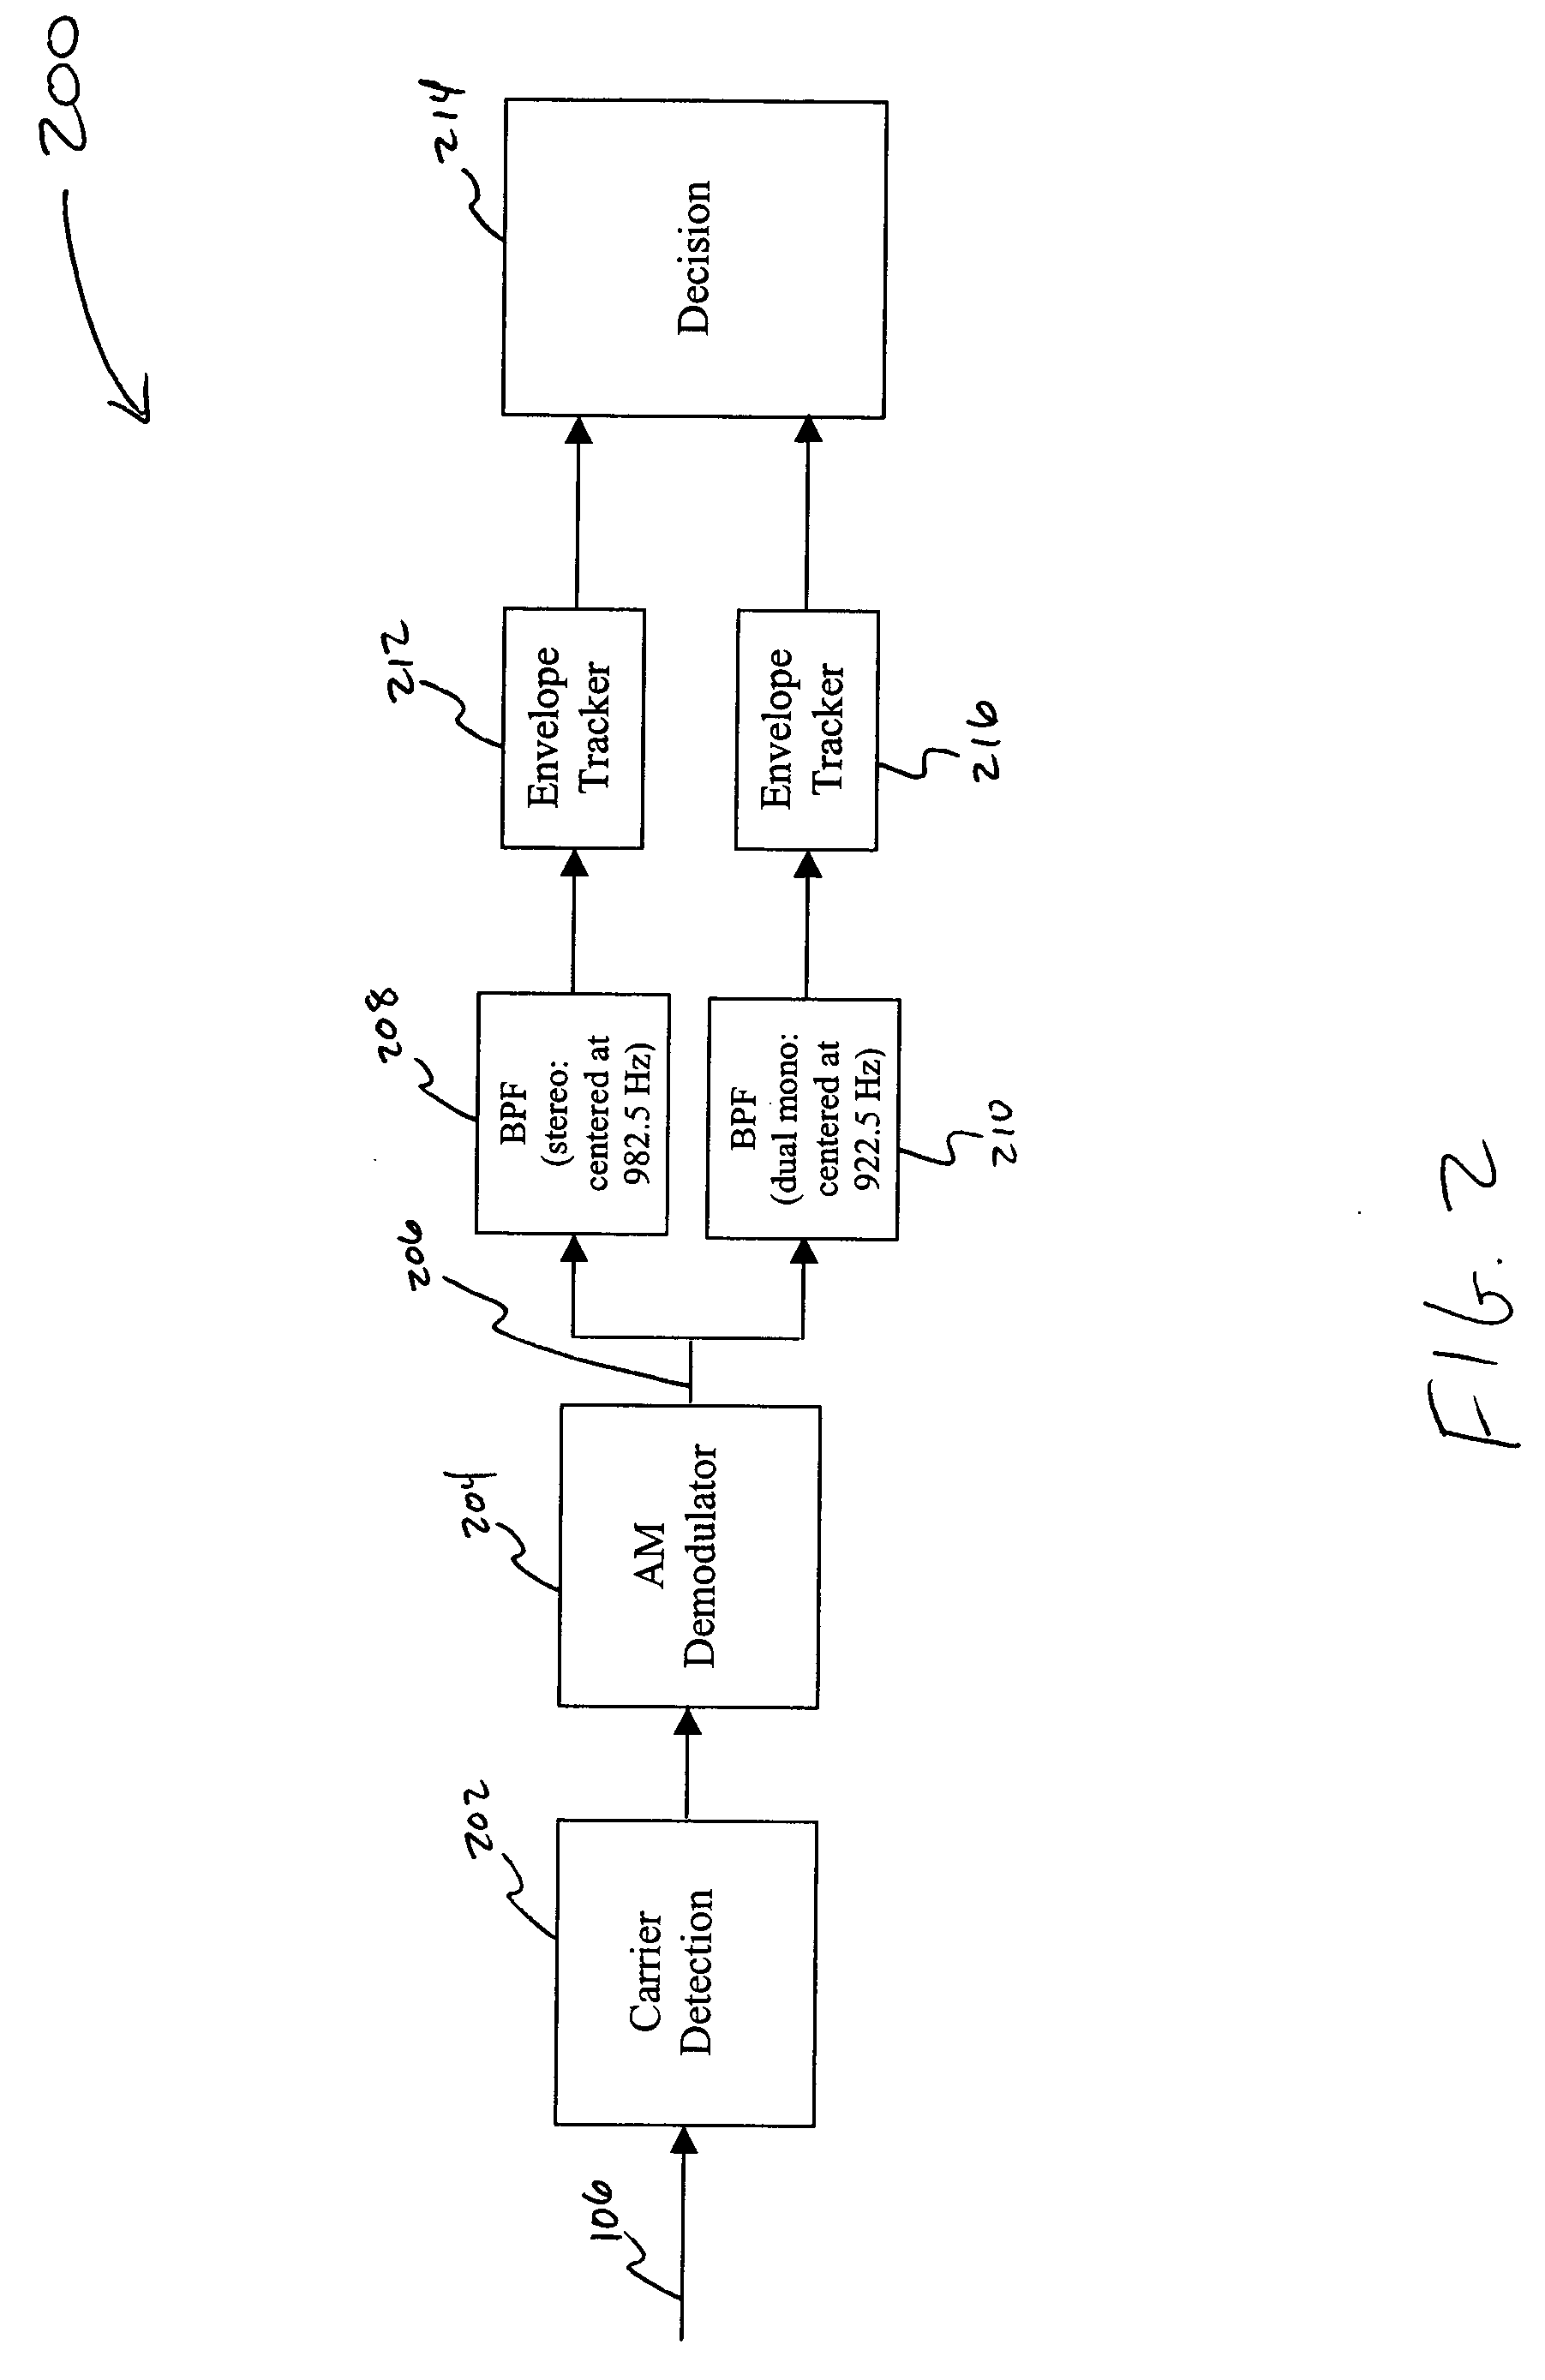 Us20050047603 Method And System For Detecting Envelope Detection Based Am Demodulation Circuit Diagram Patent Drawing